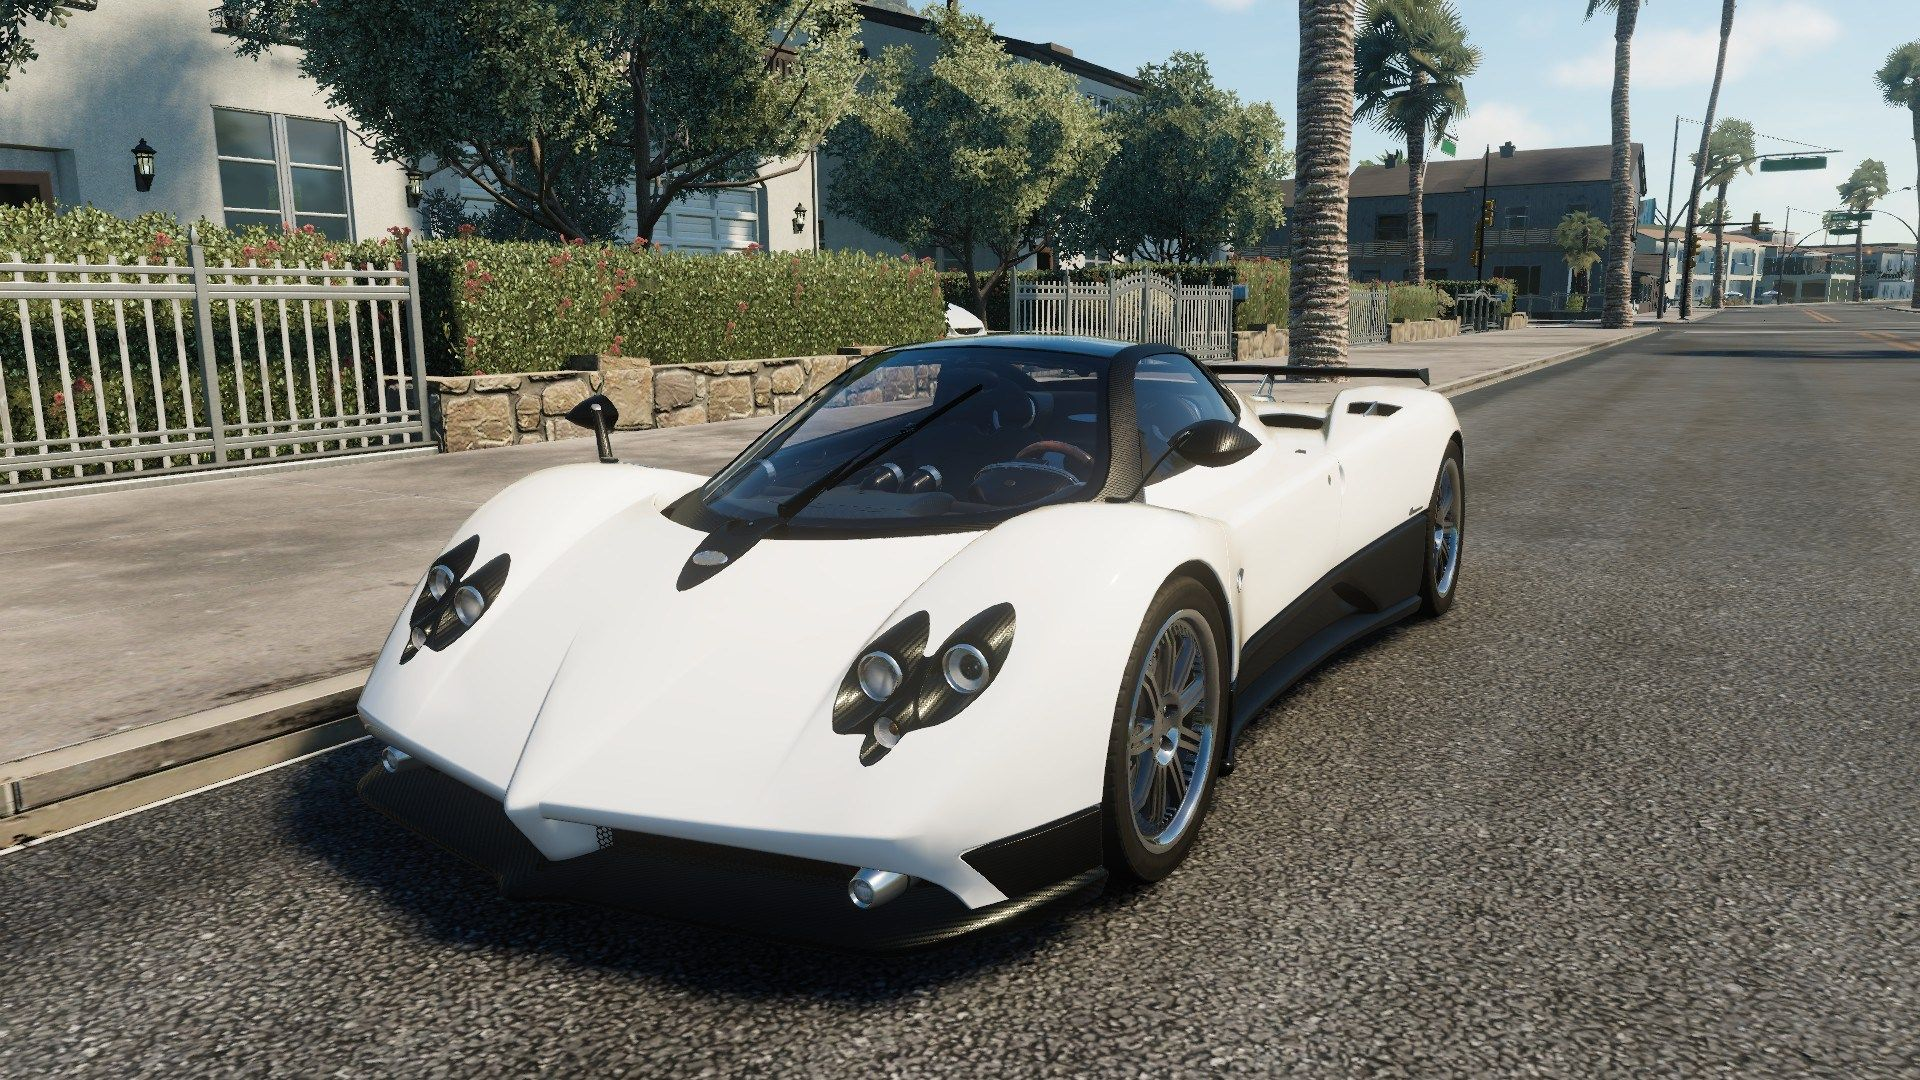 Pagani zonda f roadster price engine specs release date 2018 the goal is obviously to outdo oneself natural splendor in all styles and surface areas